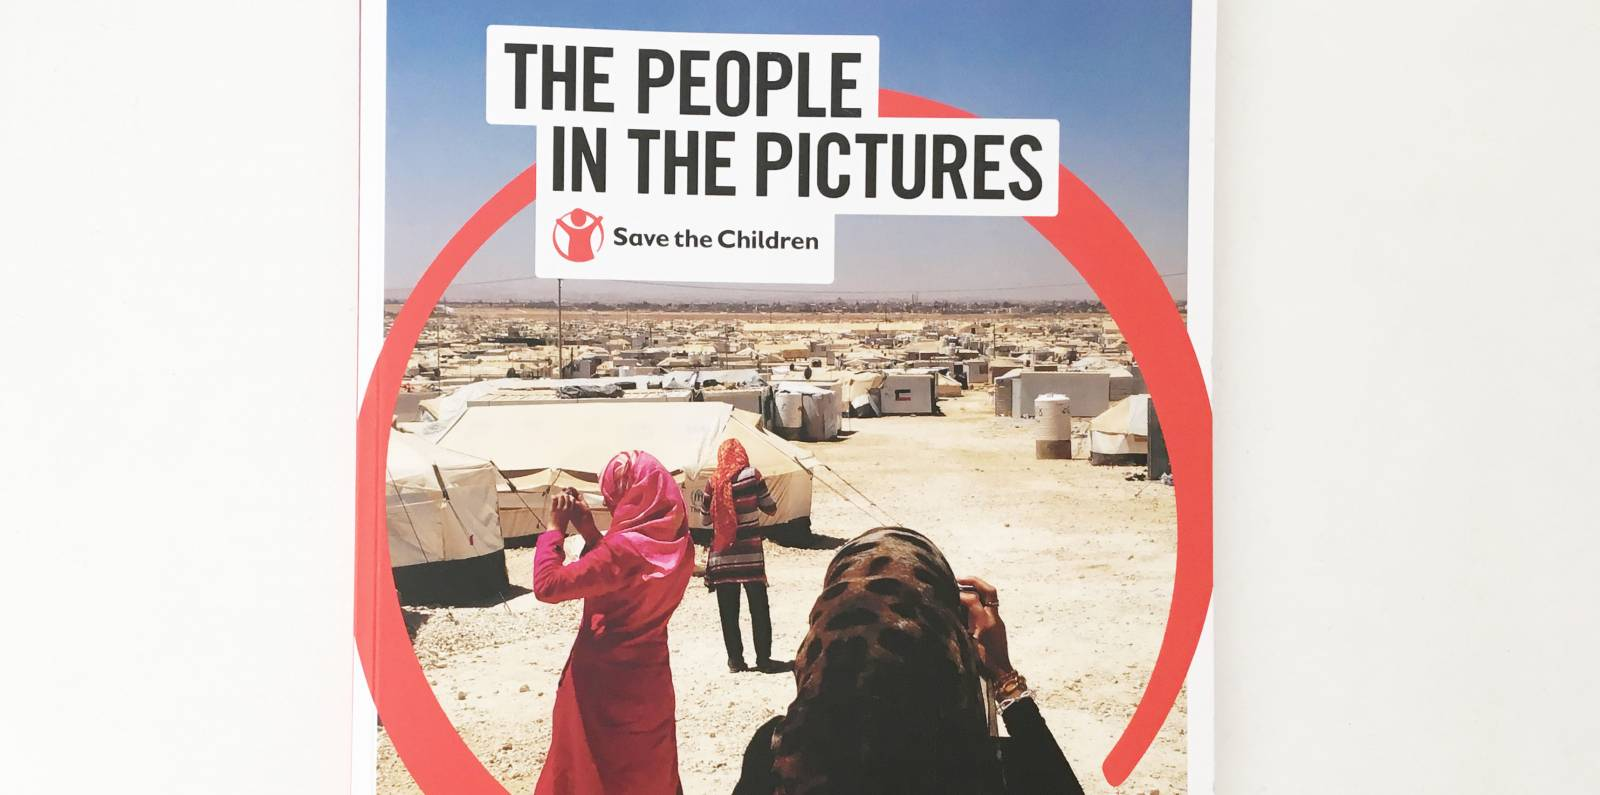 PhotoVoice » Save the Children publishes research into their use of